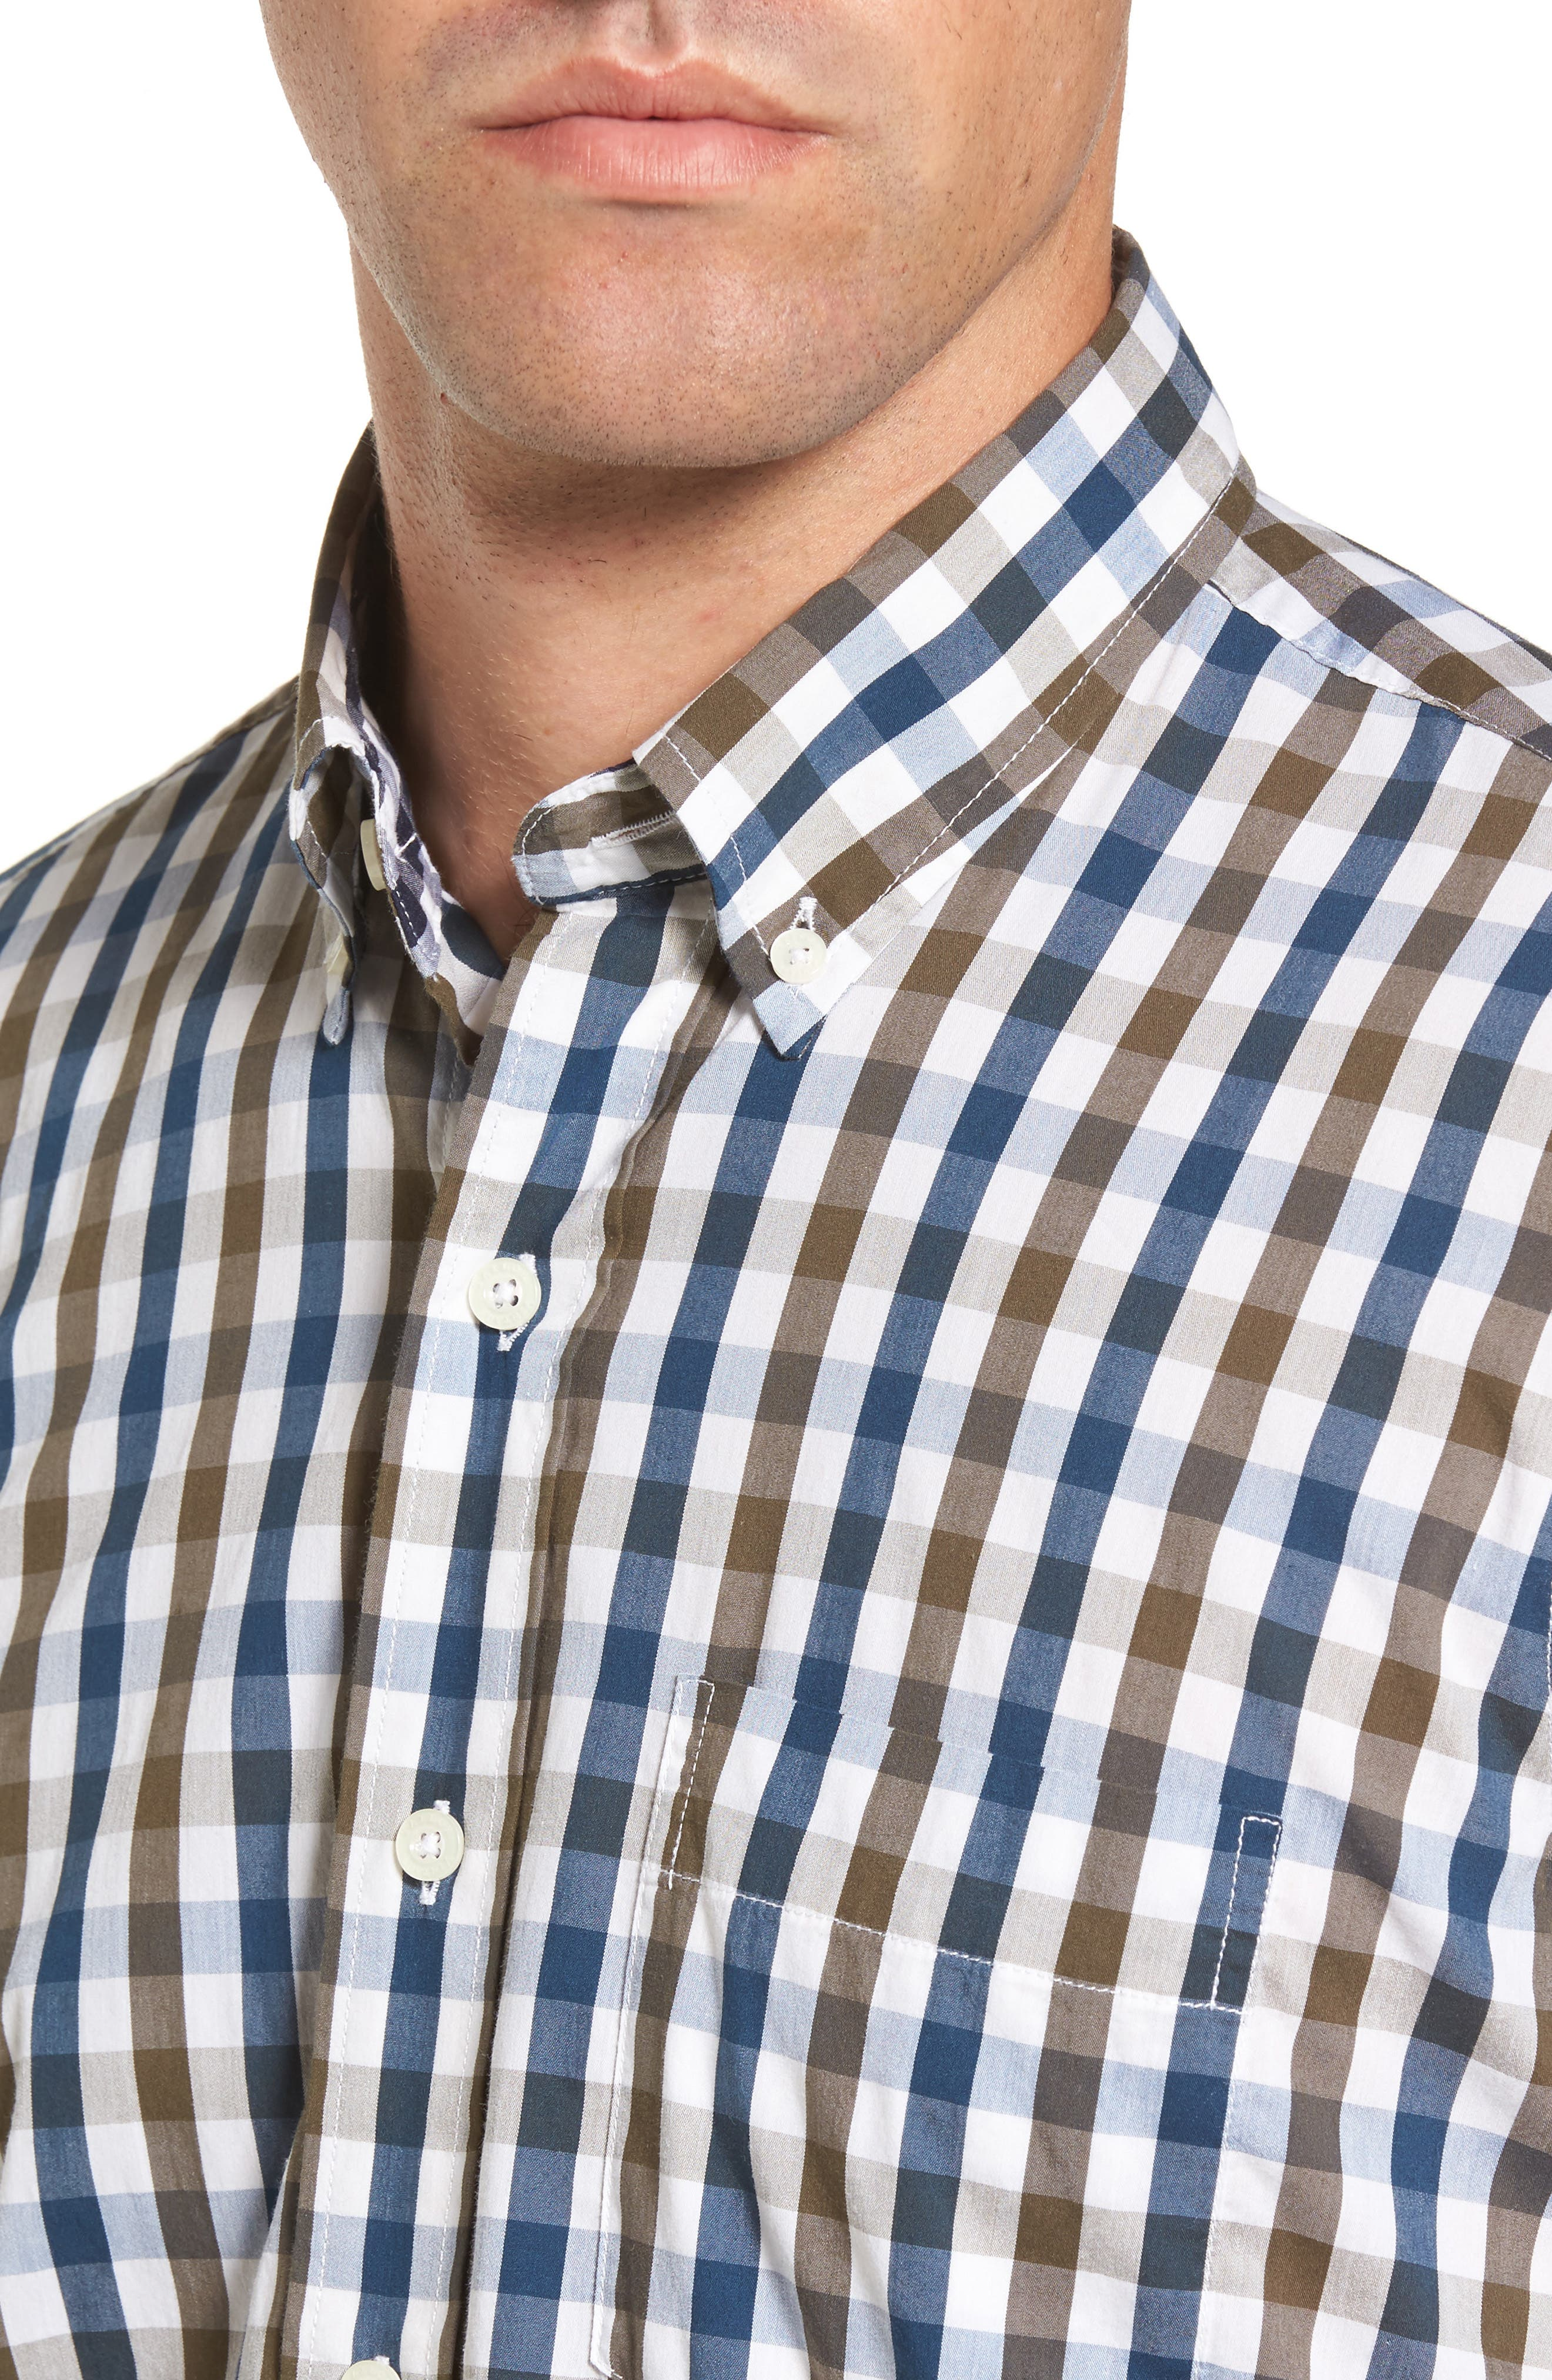 Regular Fit Performance Sport Shirt,                             Alternate thumbnail 4, color,                             Teal/ Army Tricolor Gingham